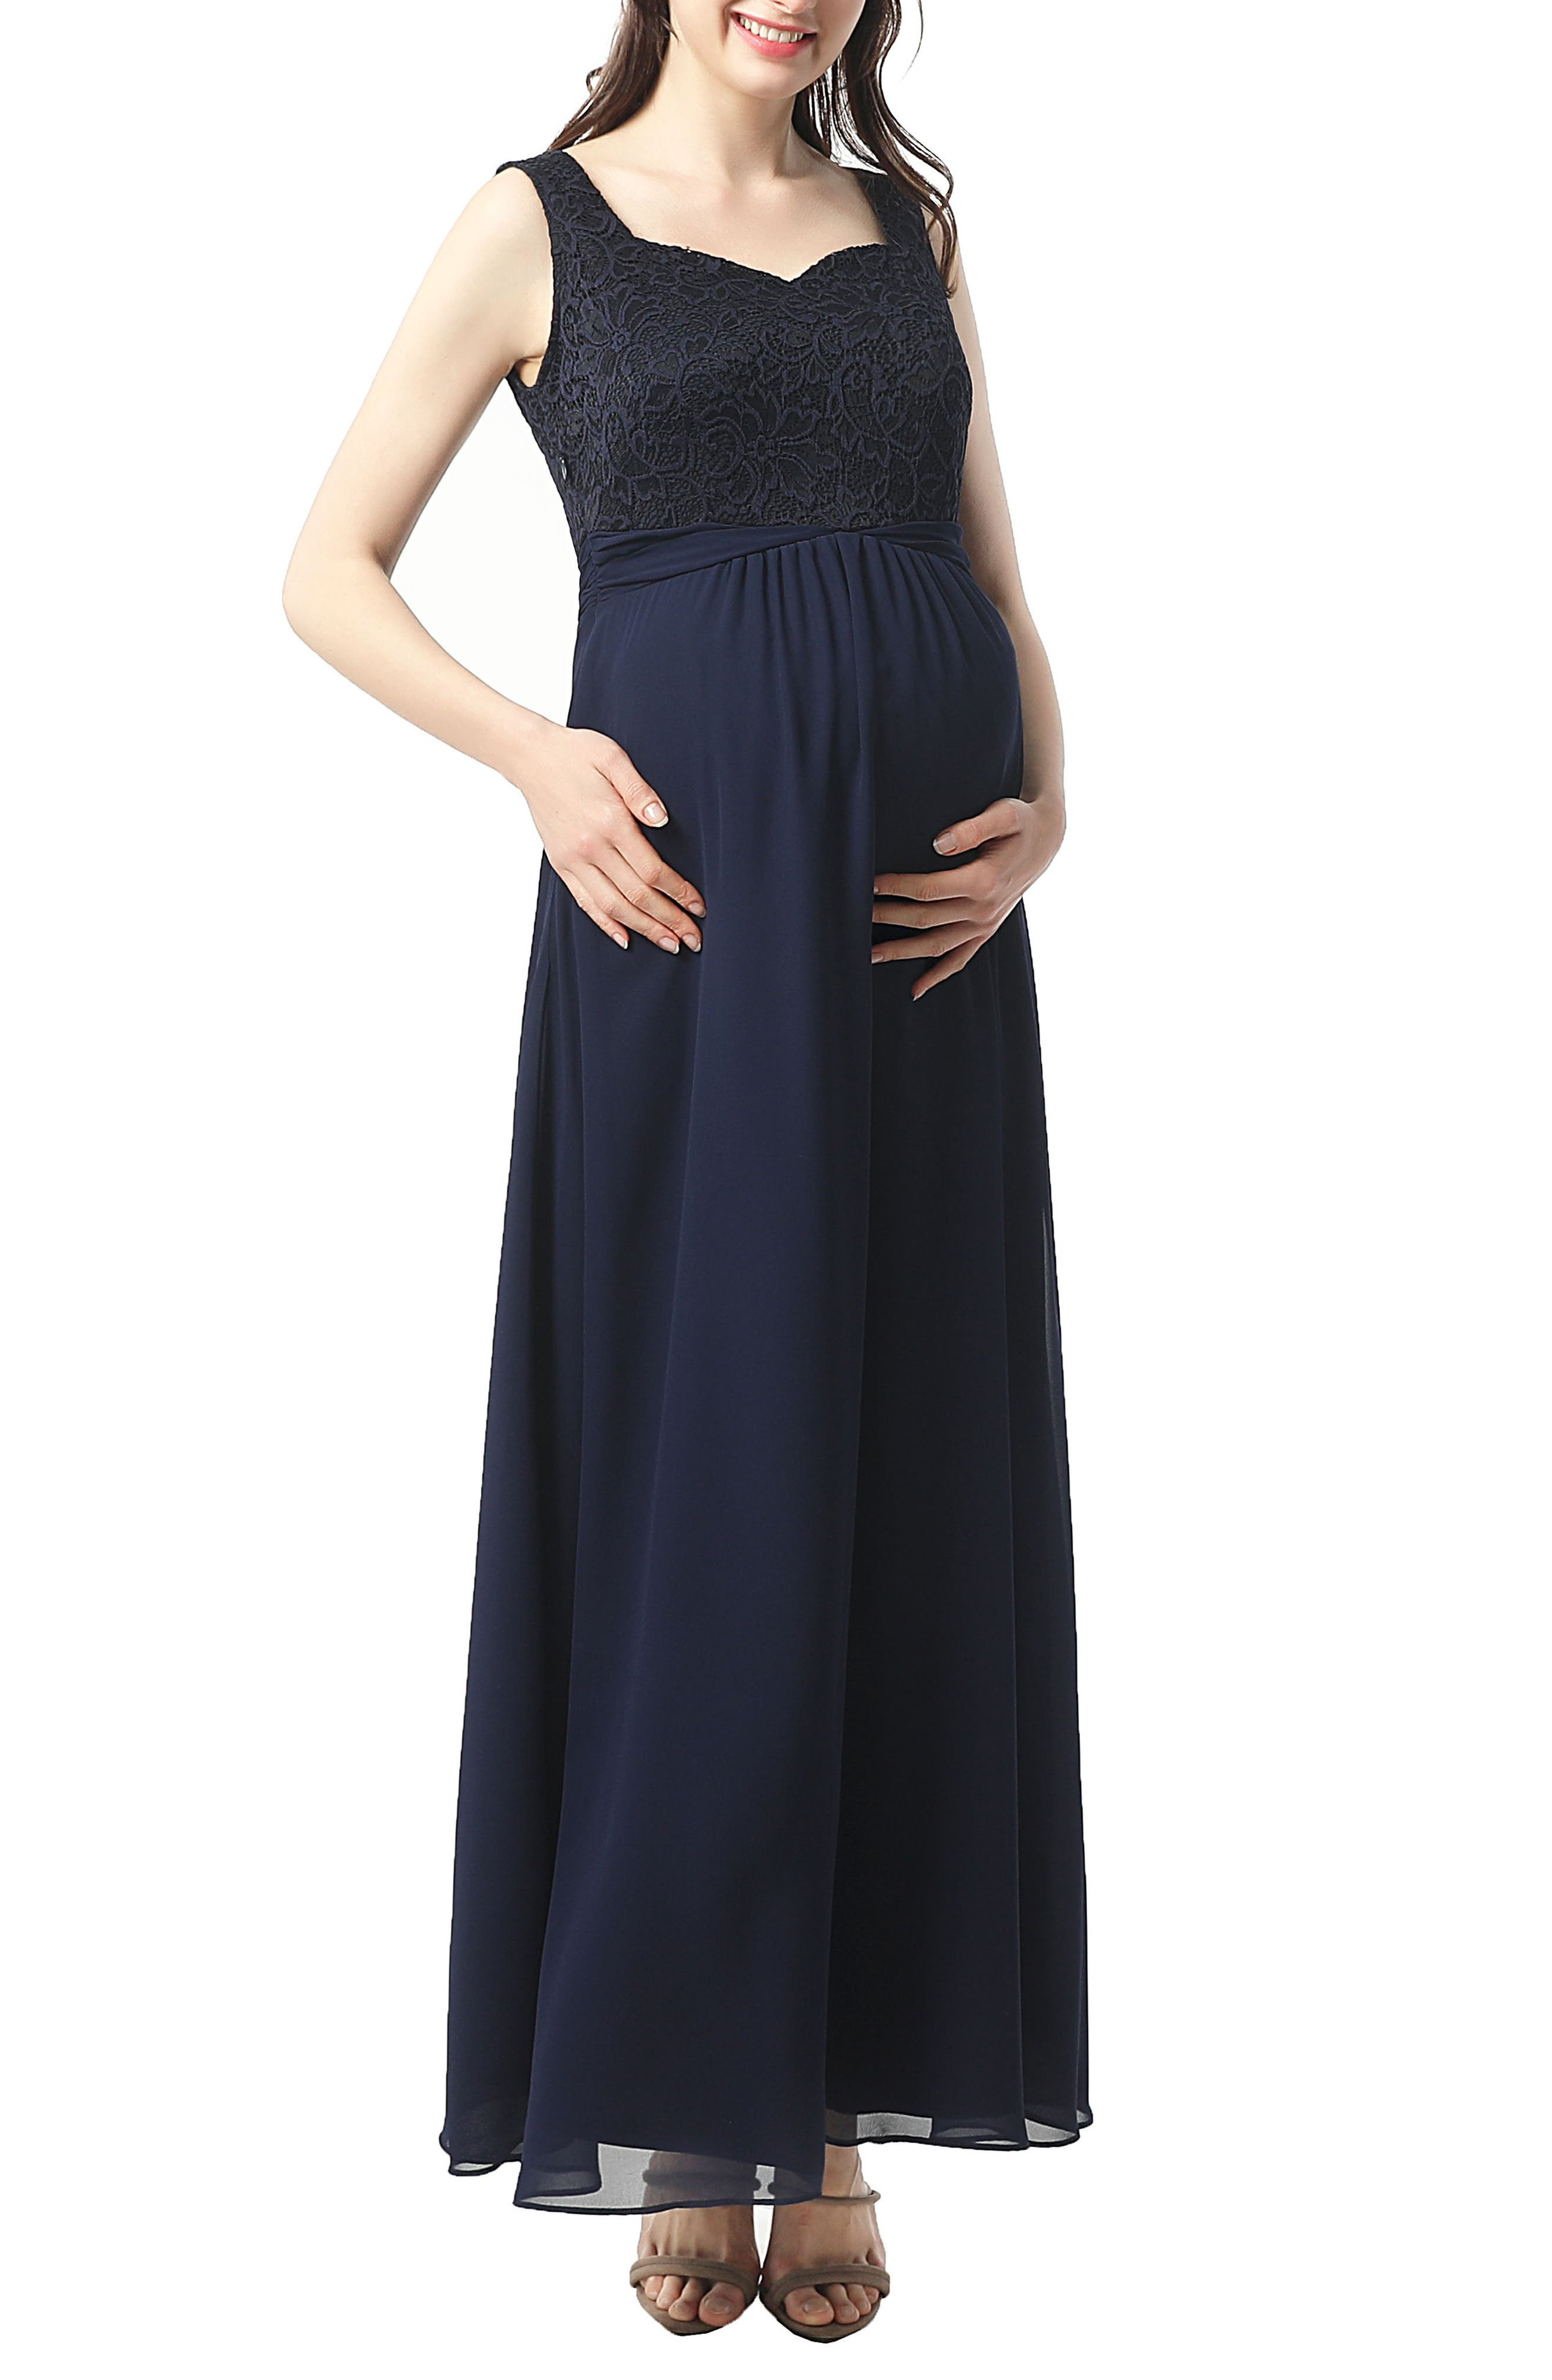 Kyra Maternity Maxi Dress,                         Main,                         color, Navy